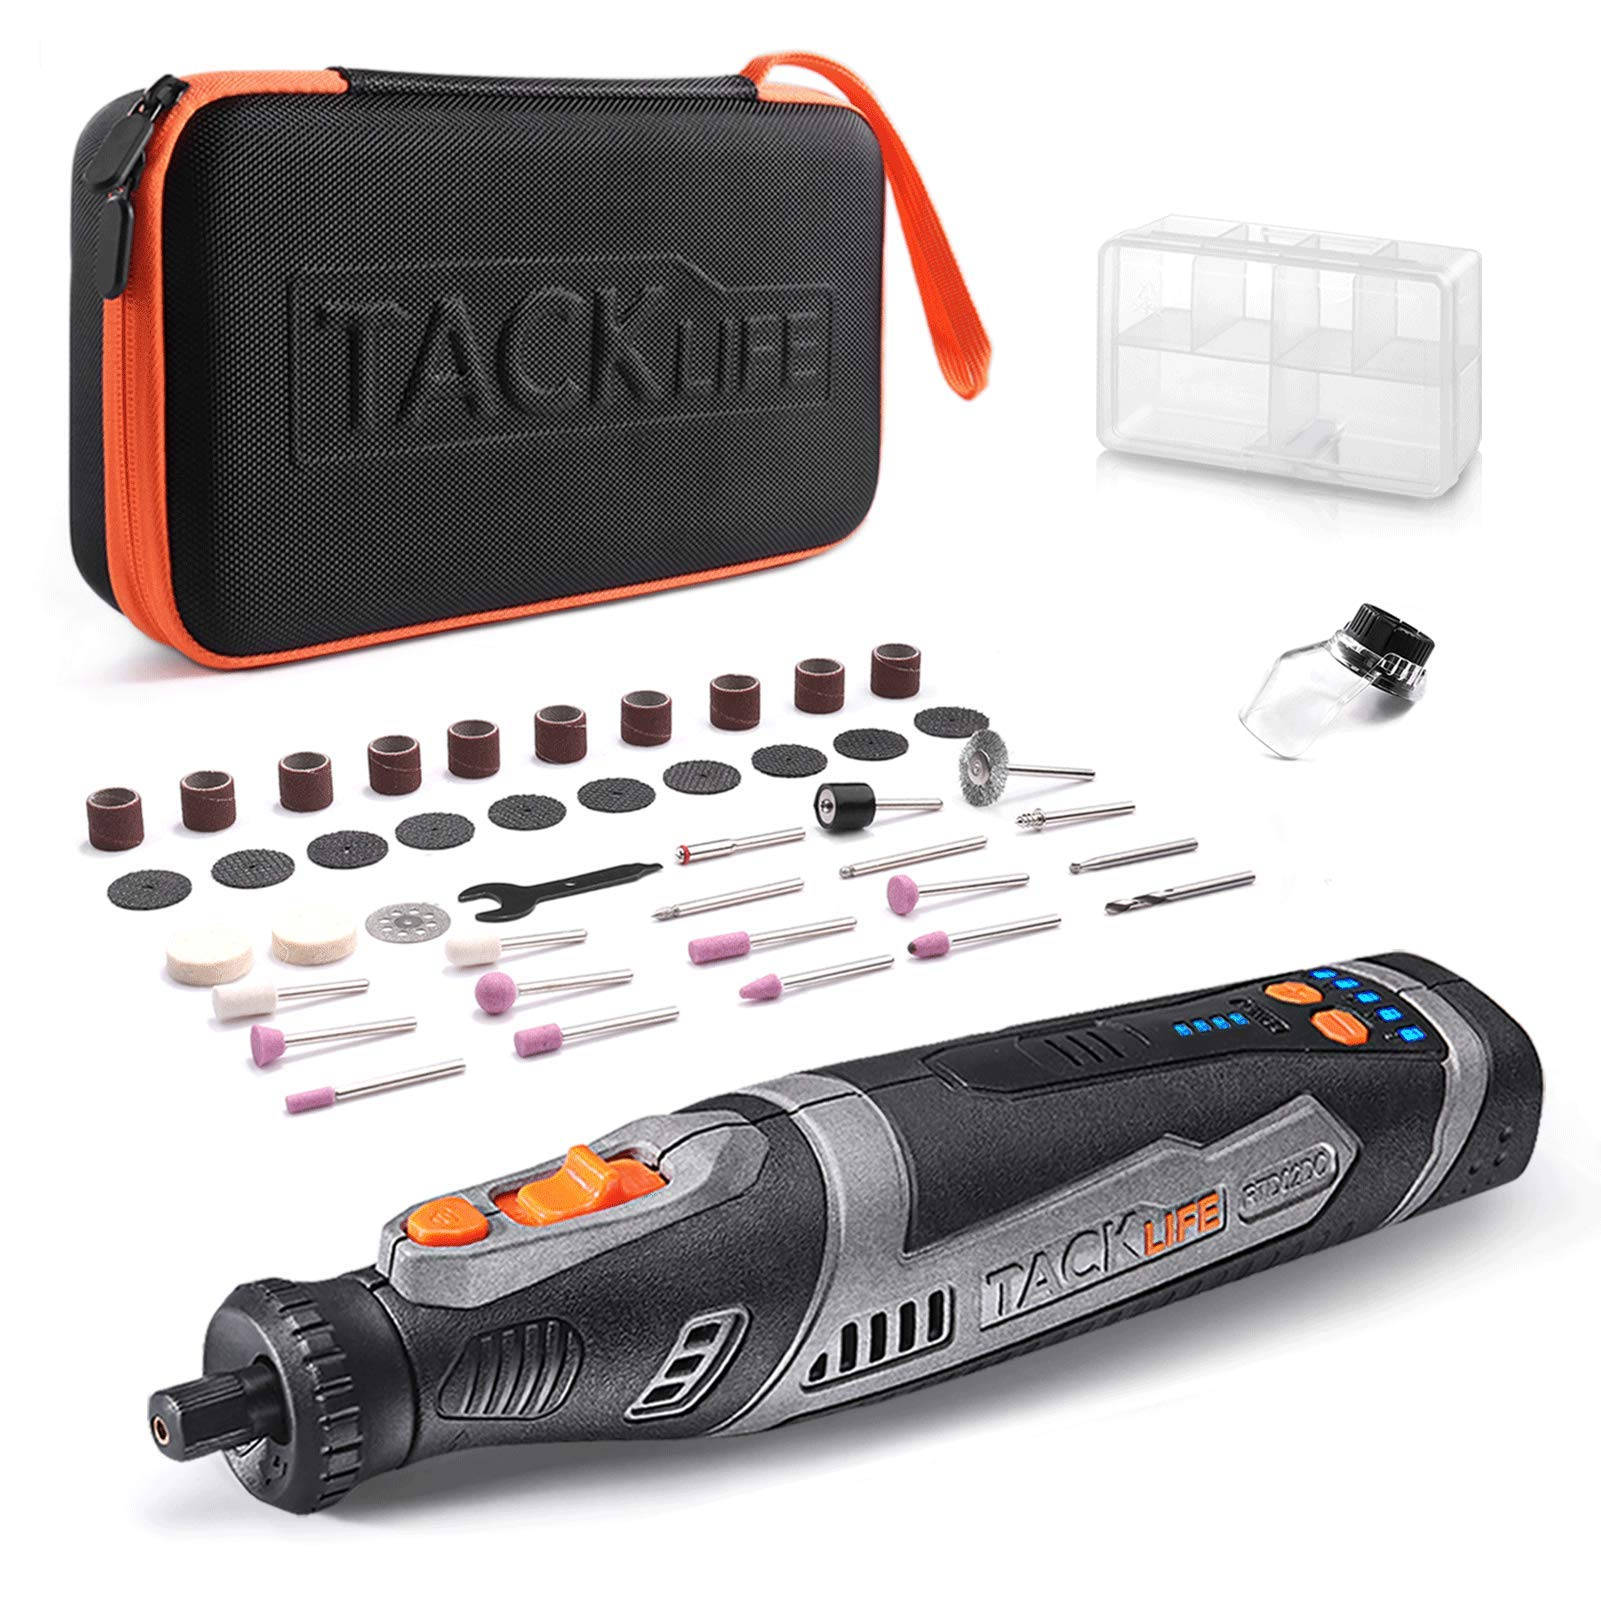 TACKLIFE Cordless Rotary Tool 8V Motor 2.0 Ah Li-ion Battery with 43 Accessories, Long Endurance Power,Perfect for Sanding, Grinding, Cutting, Engraving and Nail Grooming-RTD02DC